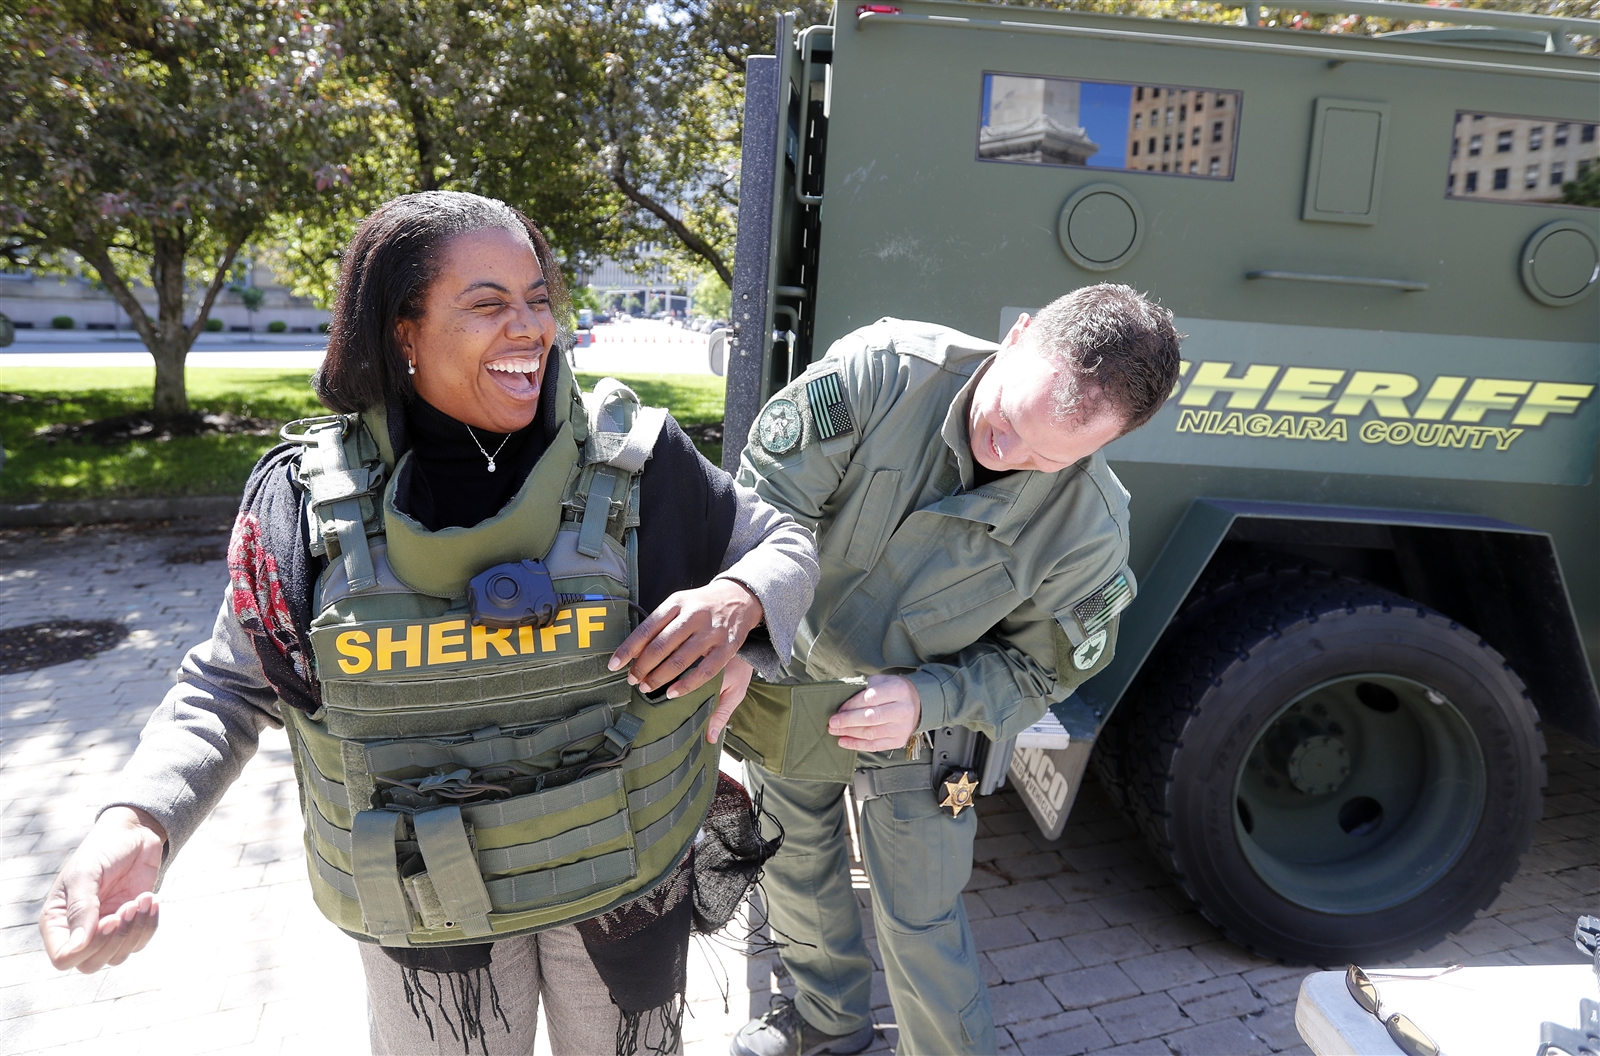 Niagara County Sheriff Deputy Tom Huff has Deidre Joseph from Tampa, Fla., try on a ballistic vest during an outdoor showcase of area law enforcement equipment in Niagara Square in Buffalo Wednesday, June 7, 2017.